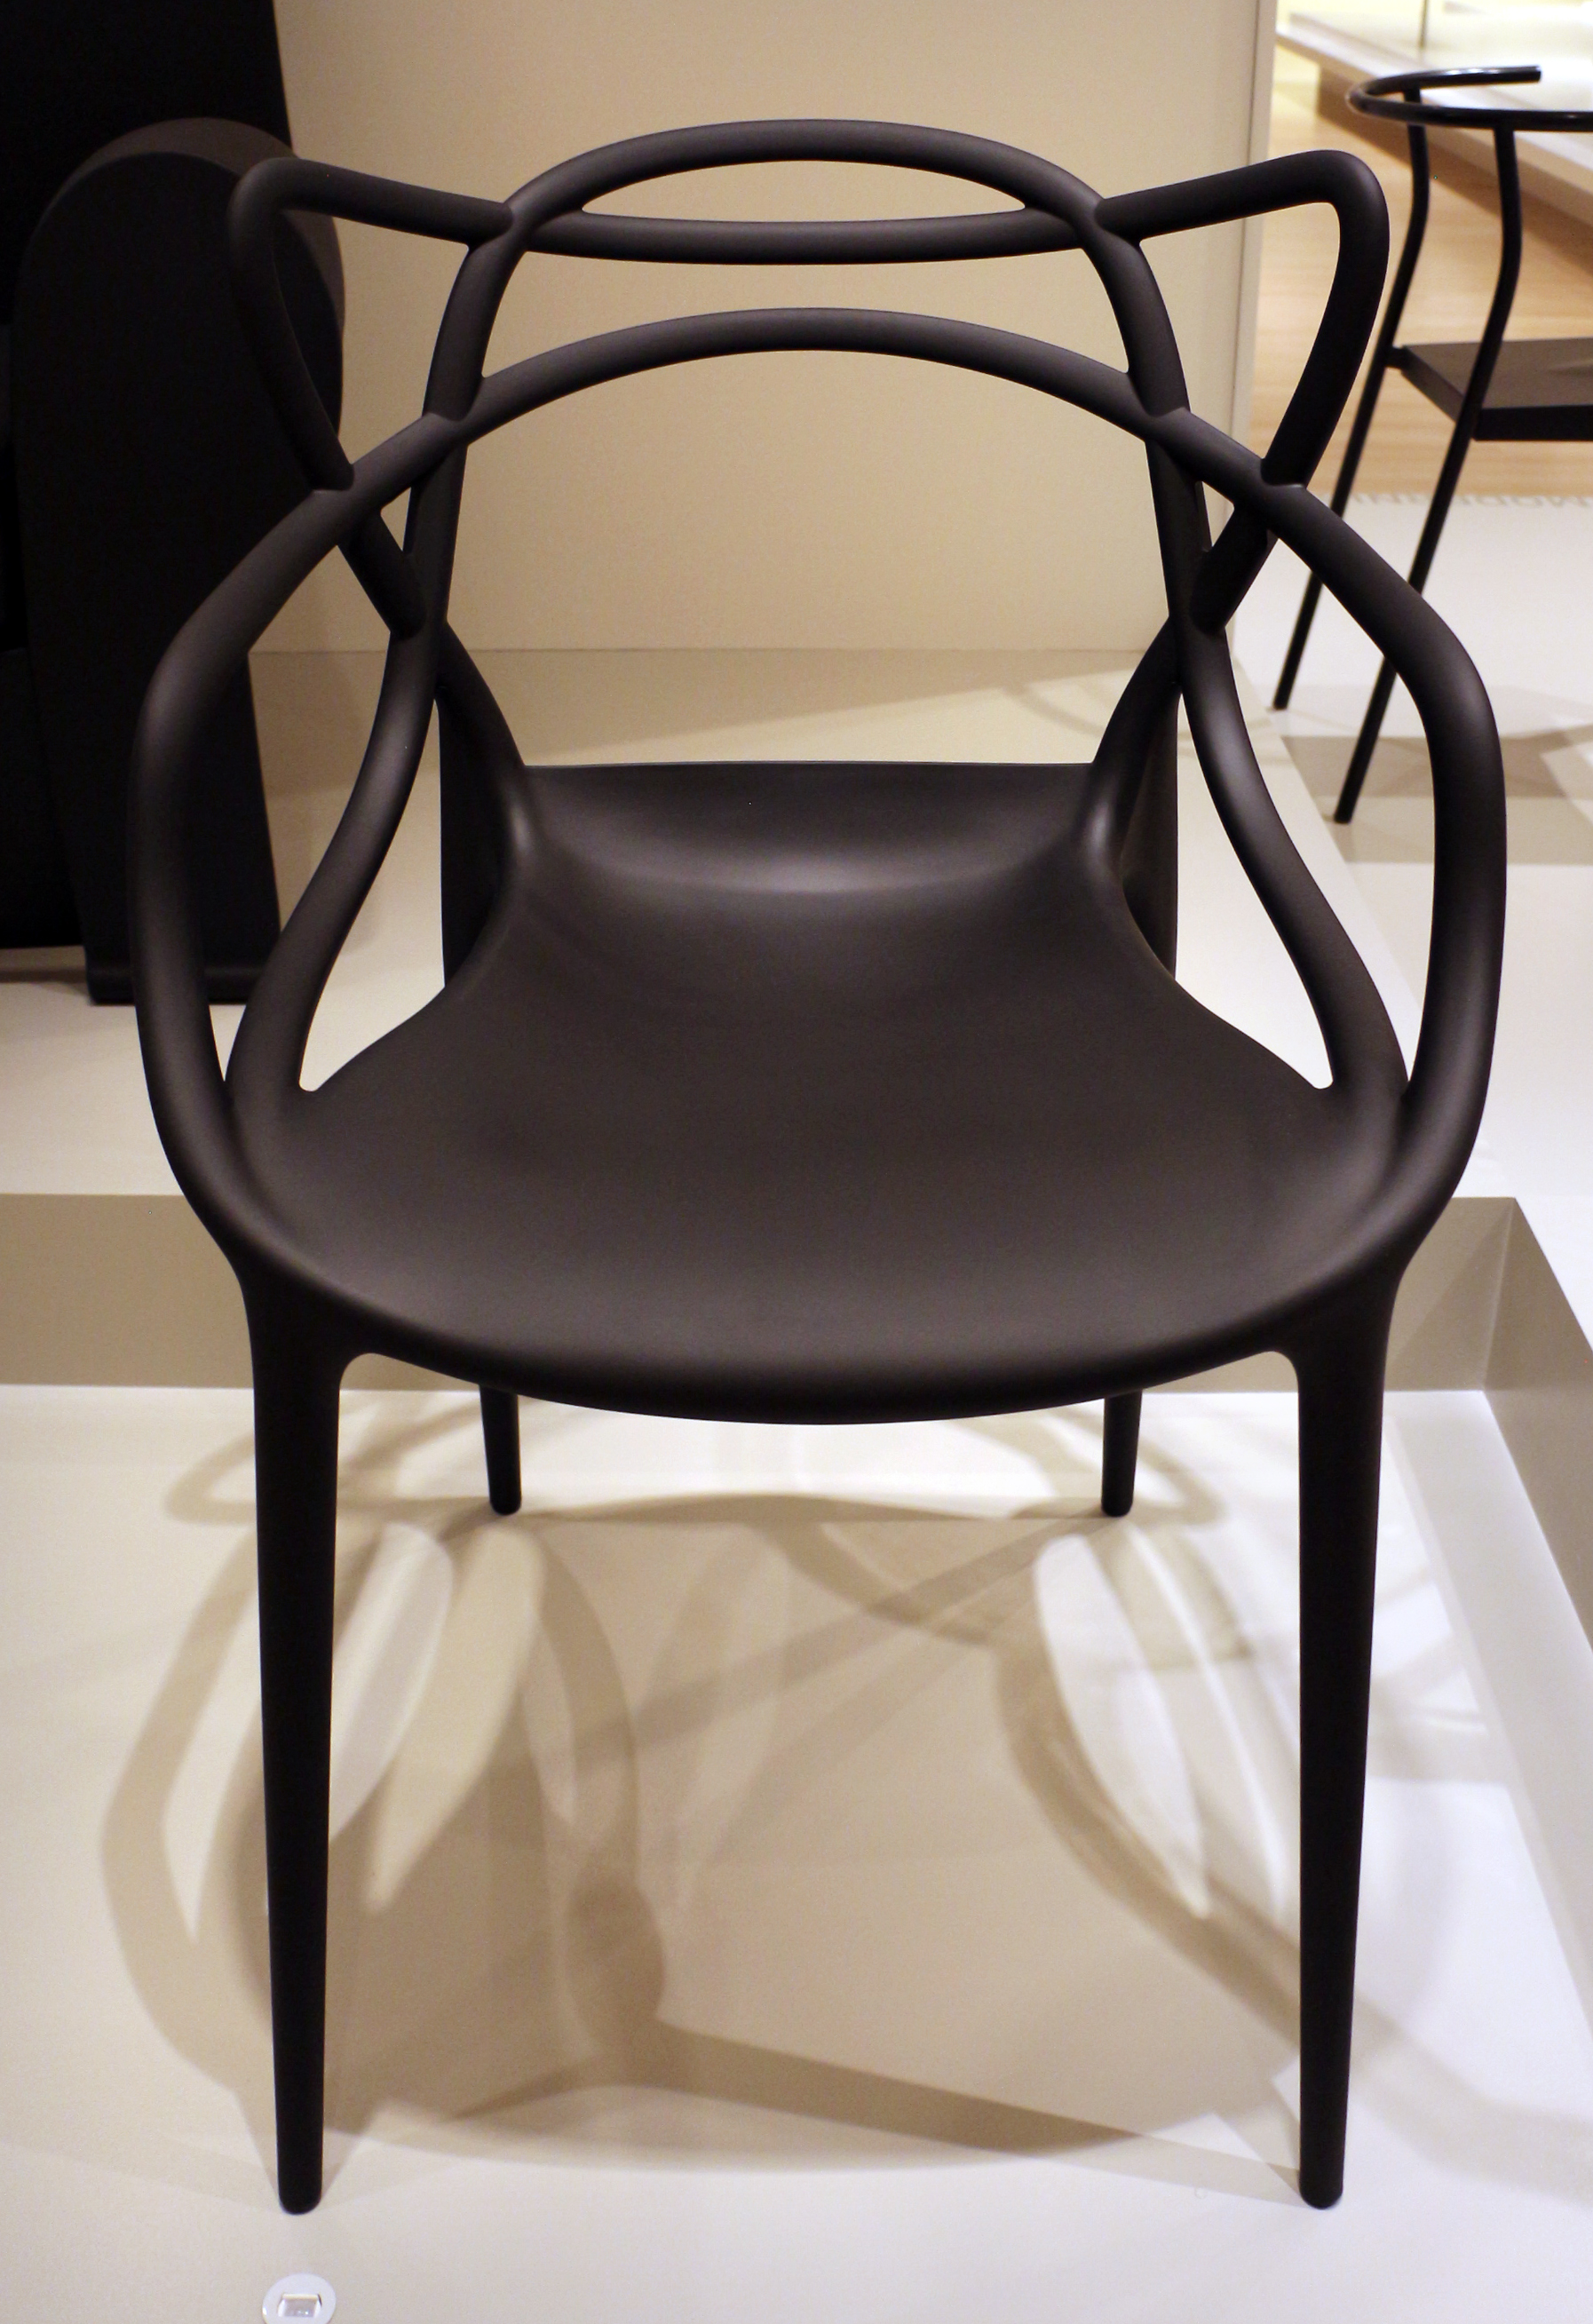 File:Philippe starck per kartell spa, sedia louis ghost ...